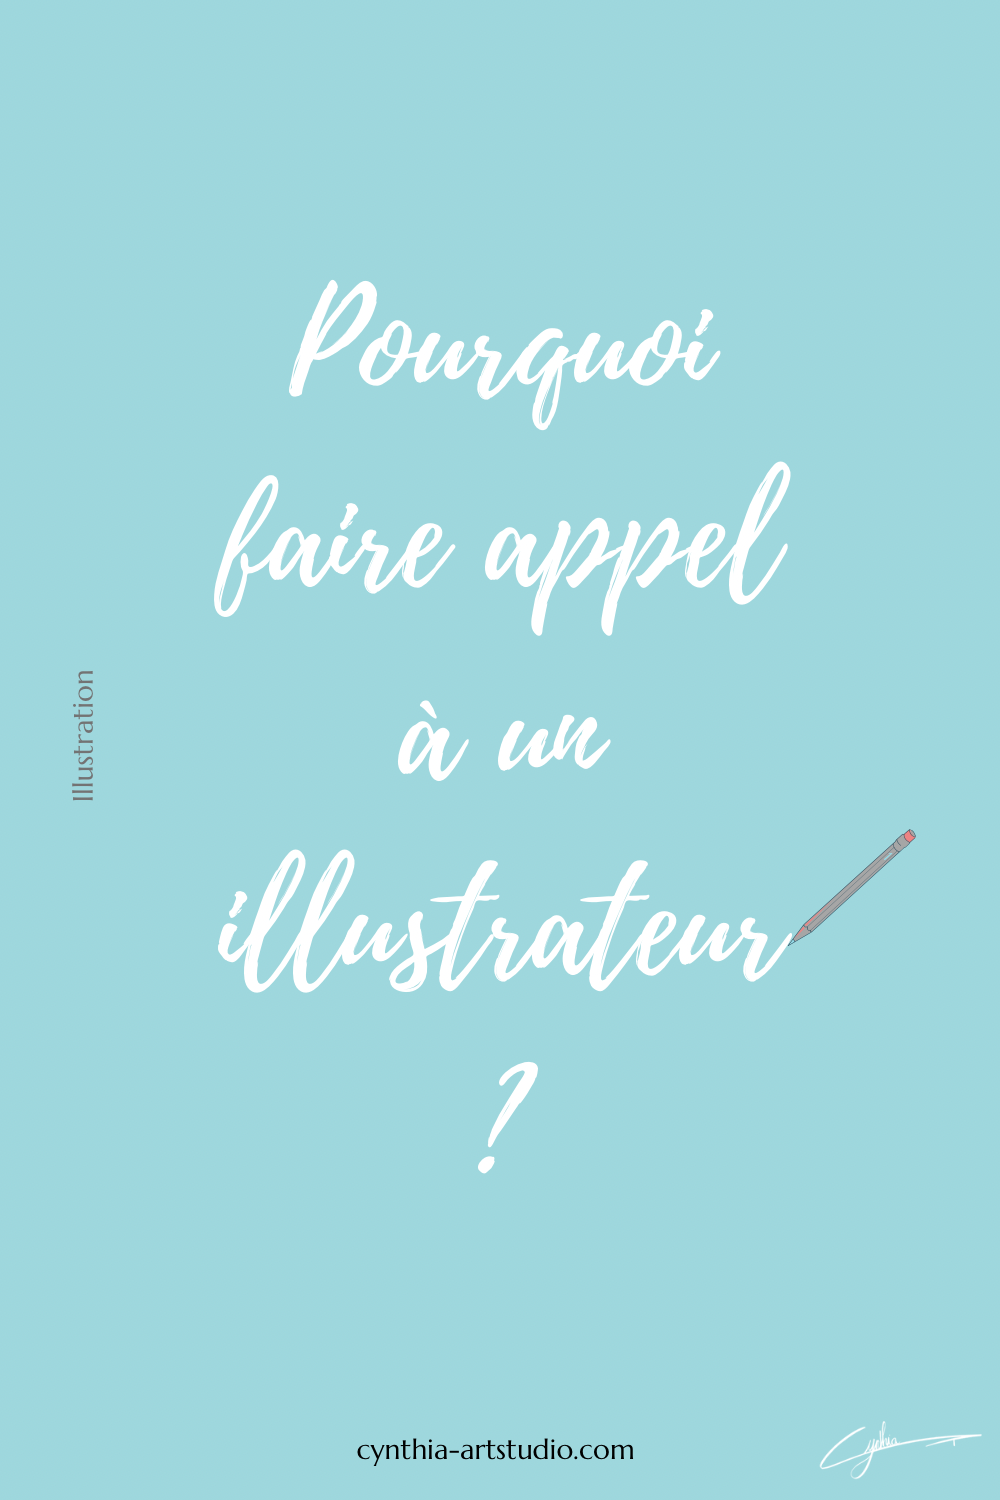 Blog Pourquoi faire appel à un illustrateur ? Cynthia Artstudio